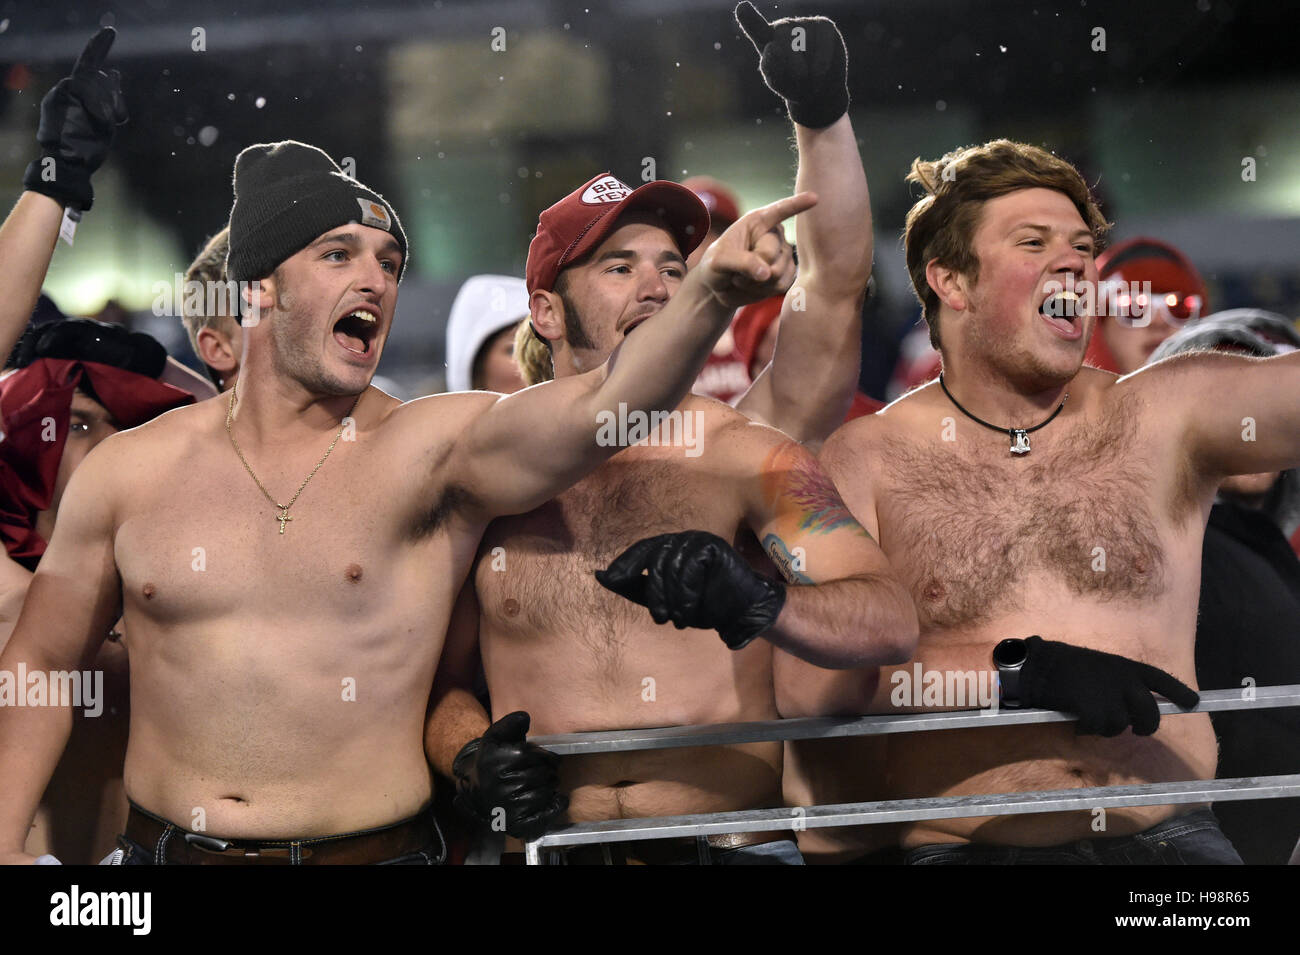 Boys with no chest hair showing cock 2